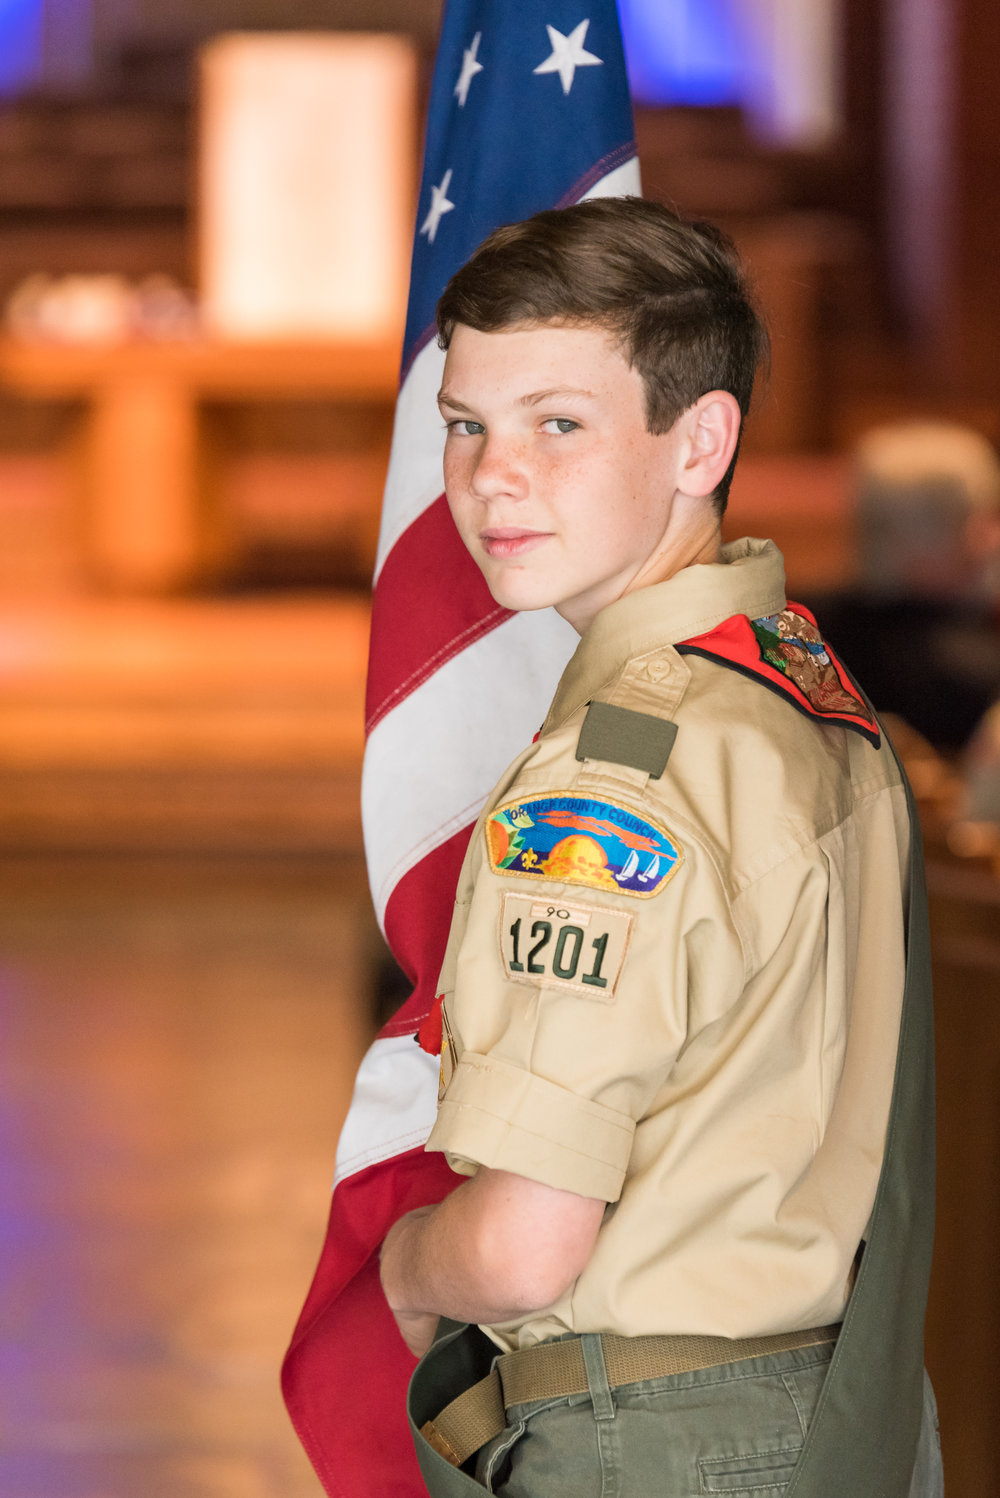 2016_March_19-eagle_scout_ceremony_fullerton_1-17594.jpg